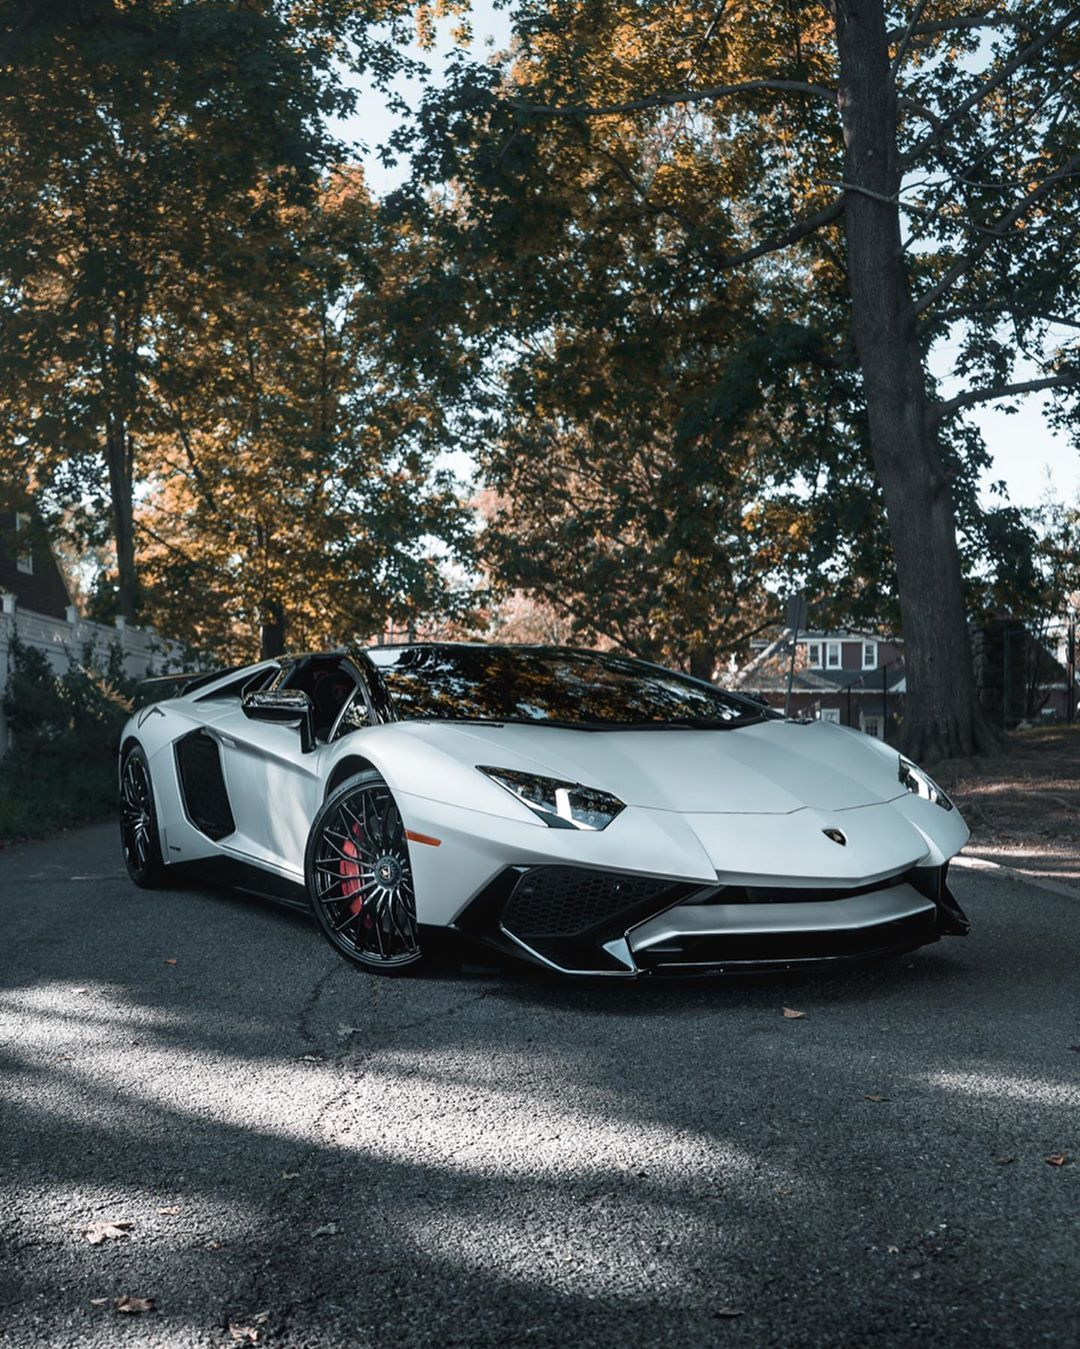 Spotted A Wild Creature In 2020 Sports Car Wallpaper White Lamborghini Lamborghini Aventador Roadster